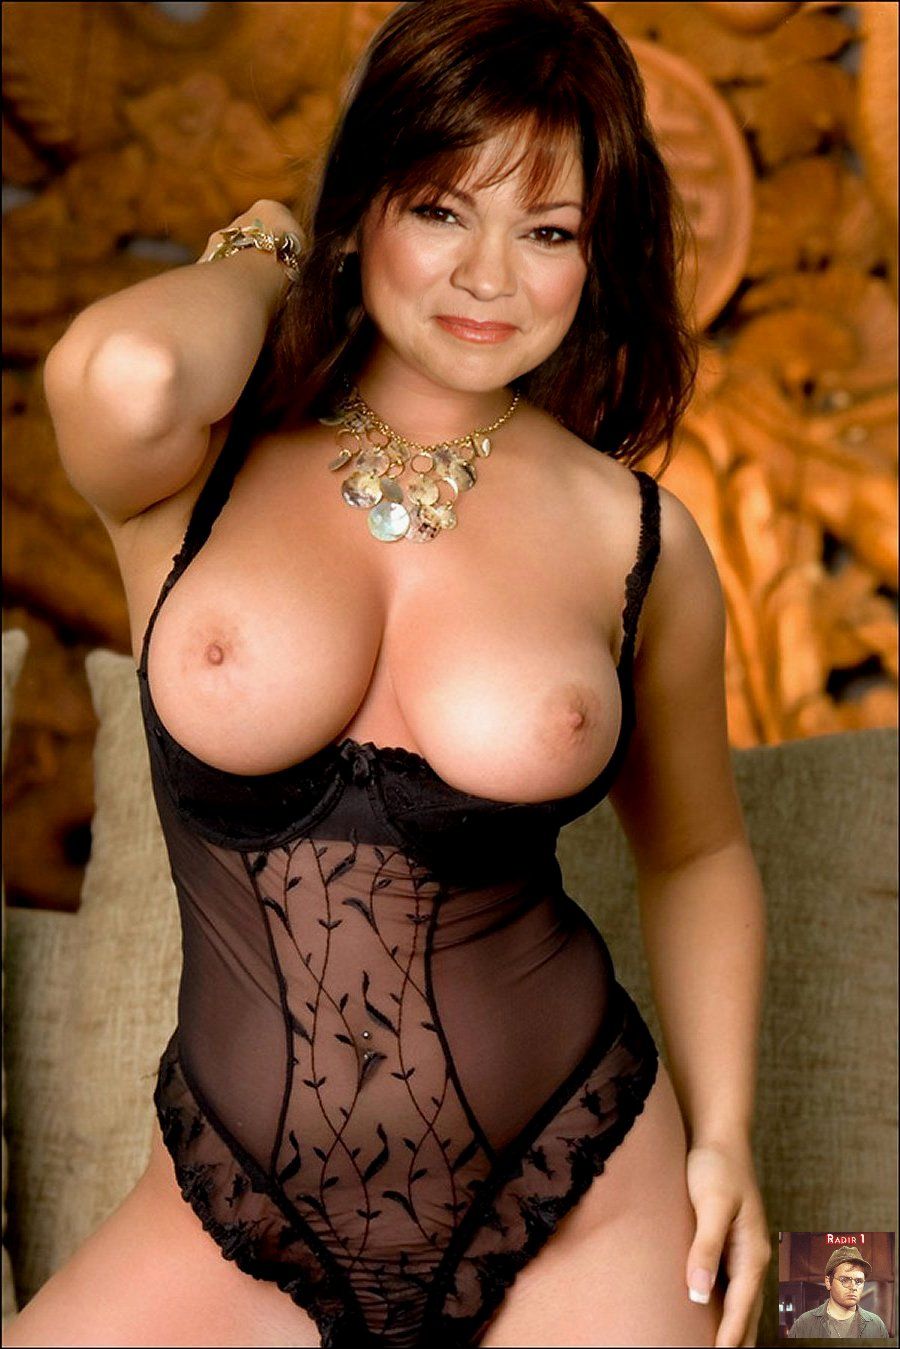 Nude Valerie Bertinelli Toes | Download Foto, Gambar ...